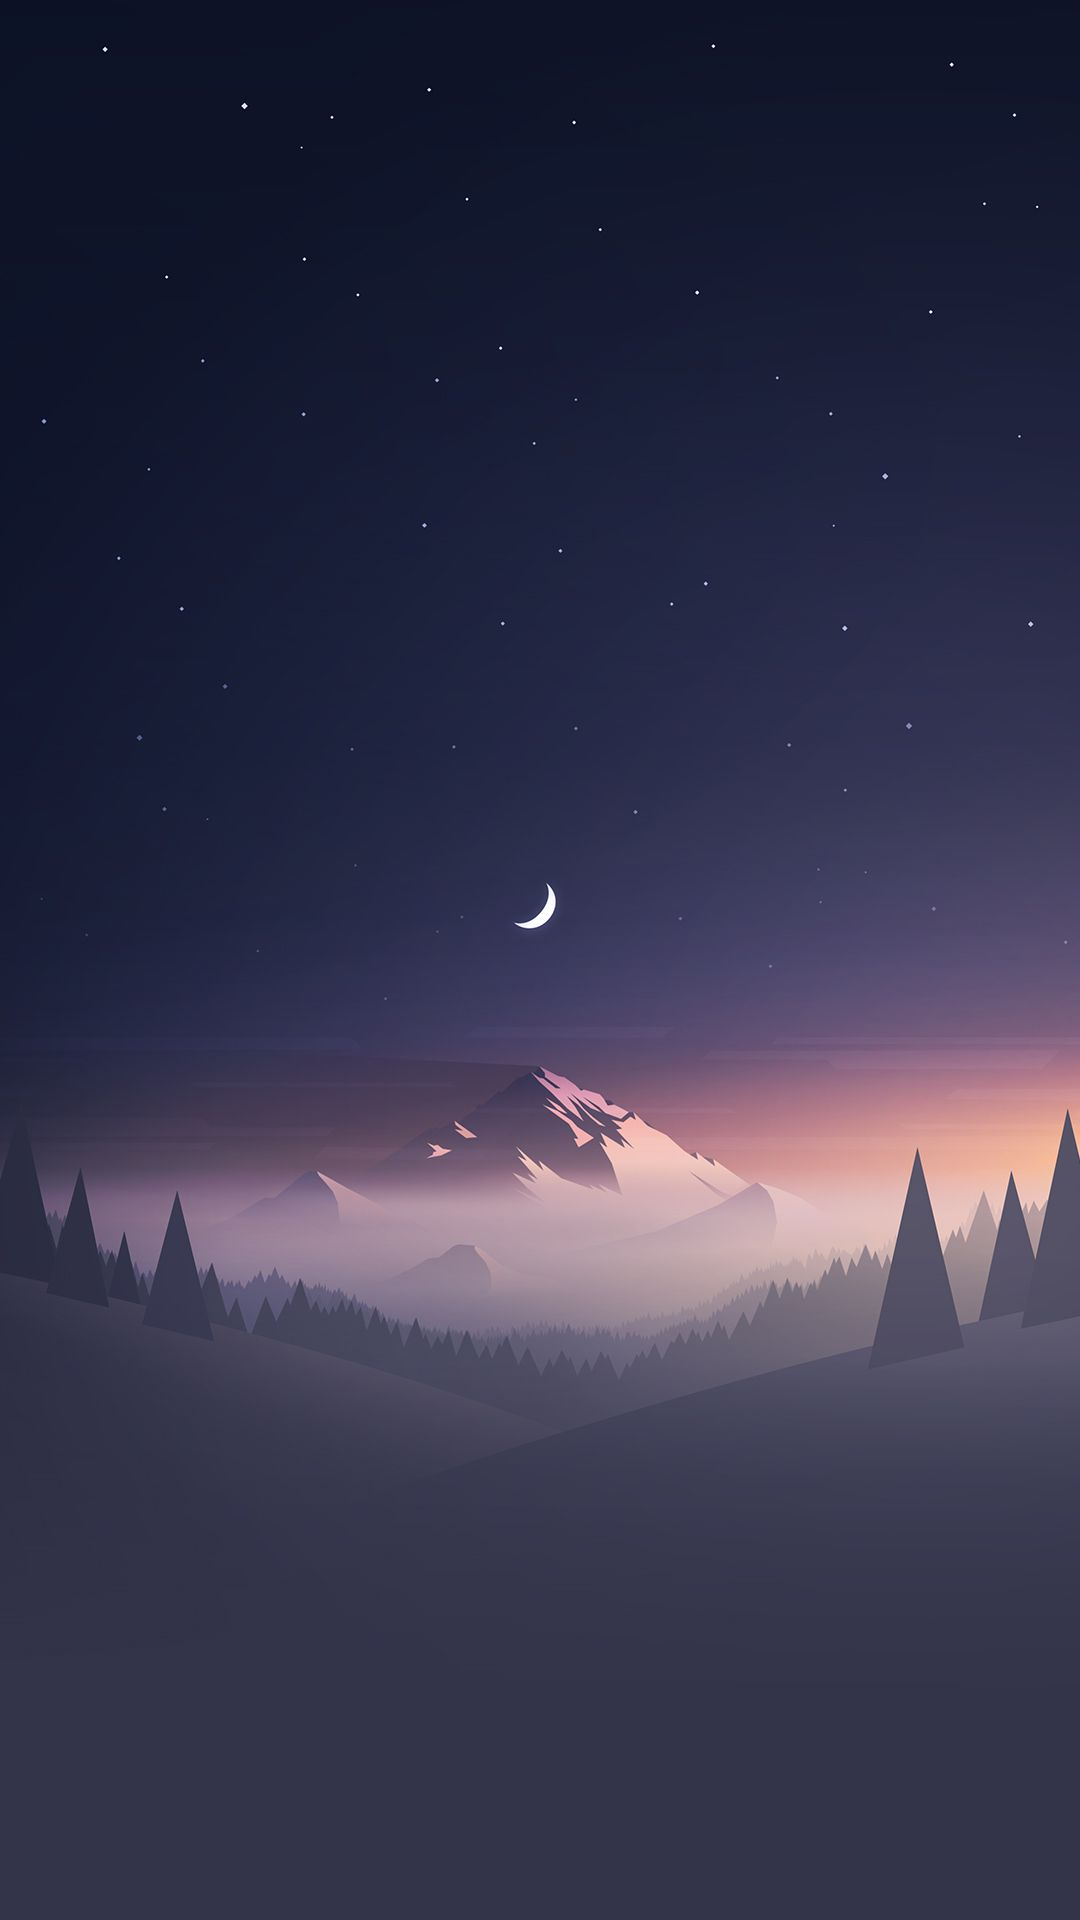 Wallpaper iphone wallpaper - Stars And Moon Winter Mountain Landscape Iphone 6 Hd Wallpaper Http